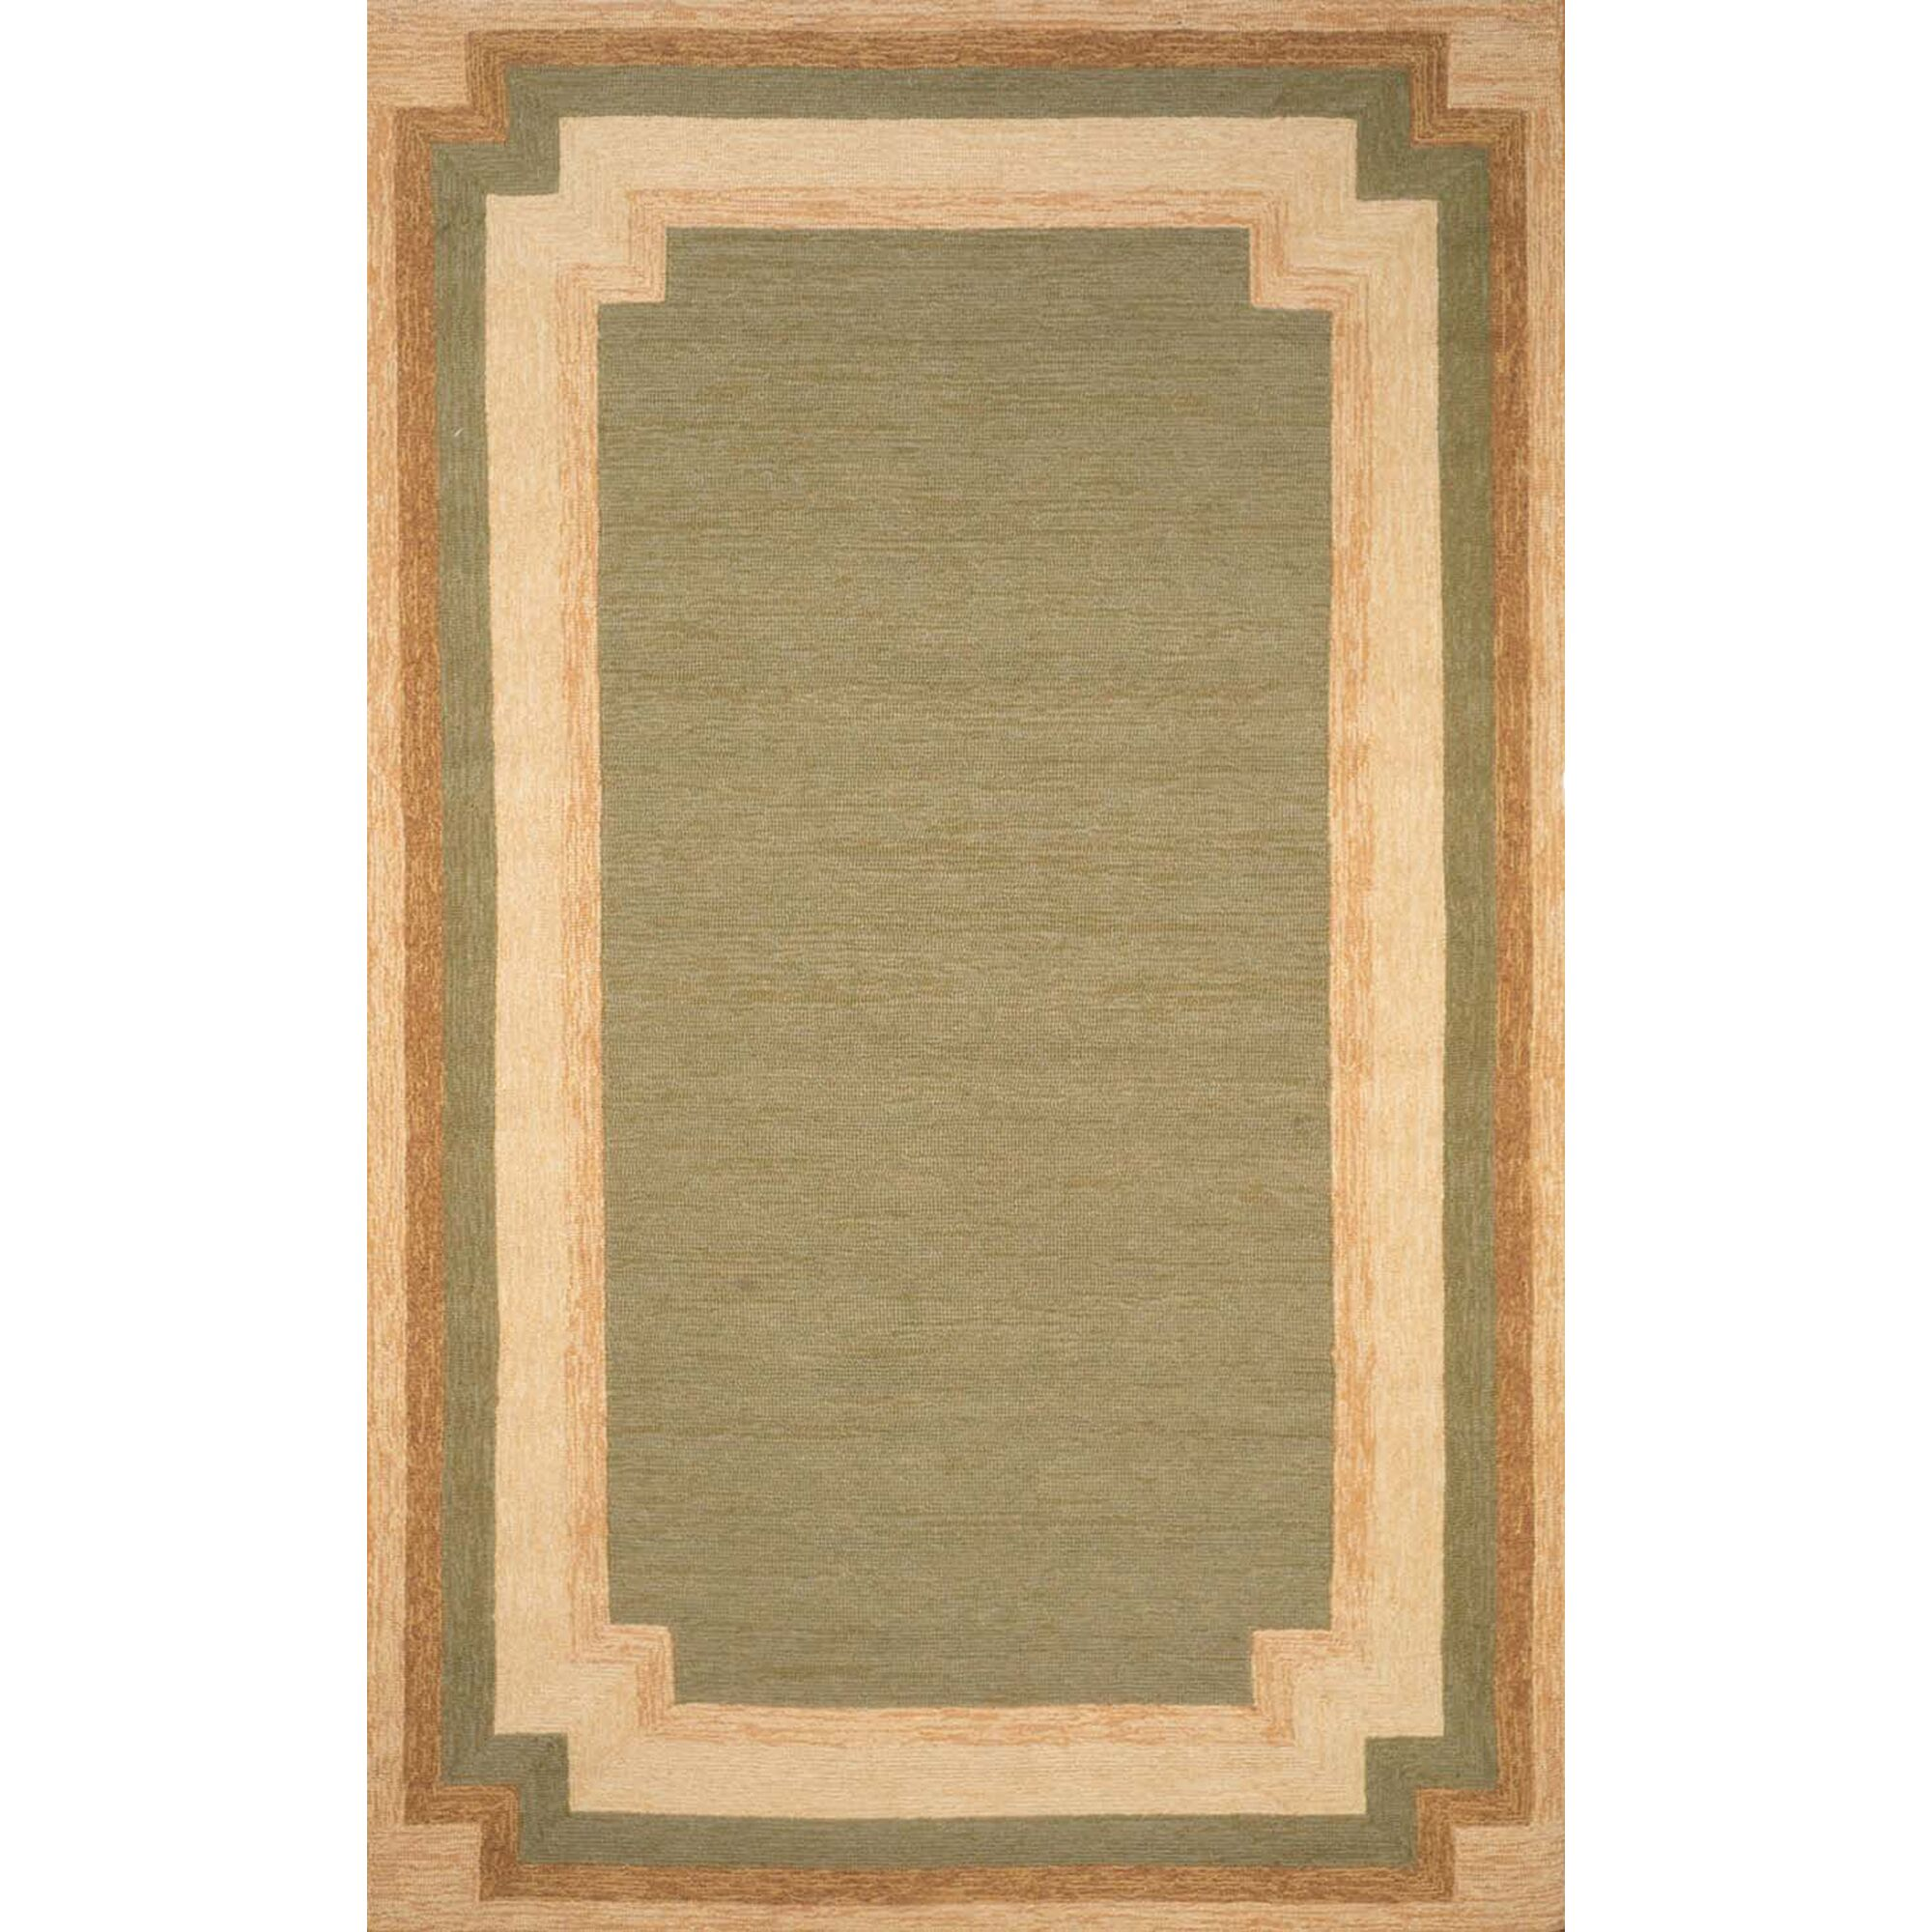 Dazey Hand-Tufted Green/Beige Indoor/Outdoor Area Rug Rug Size: Square 8'